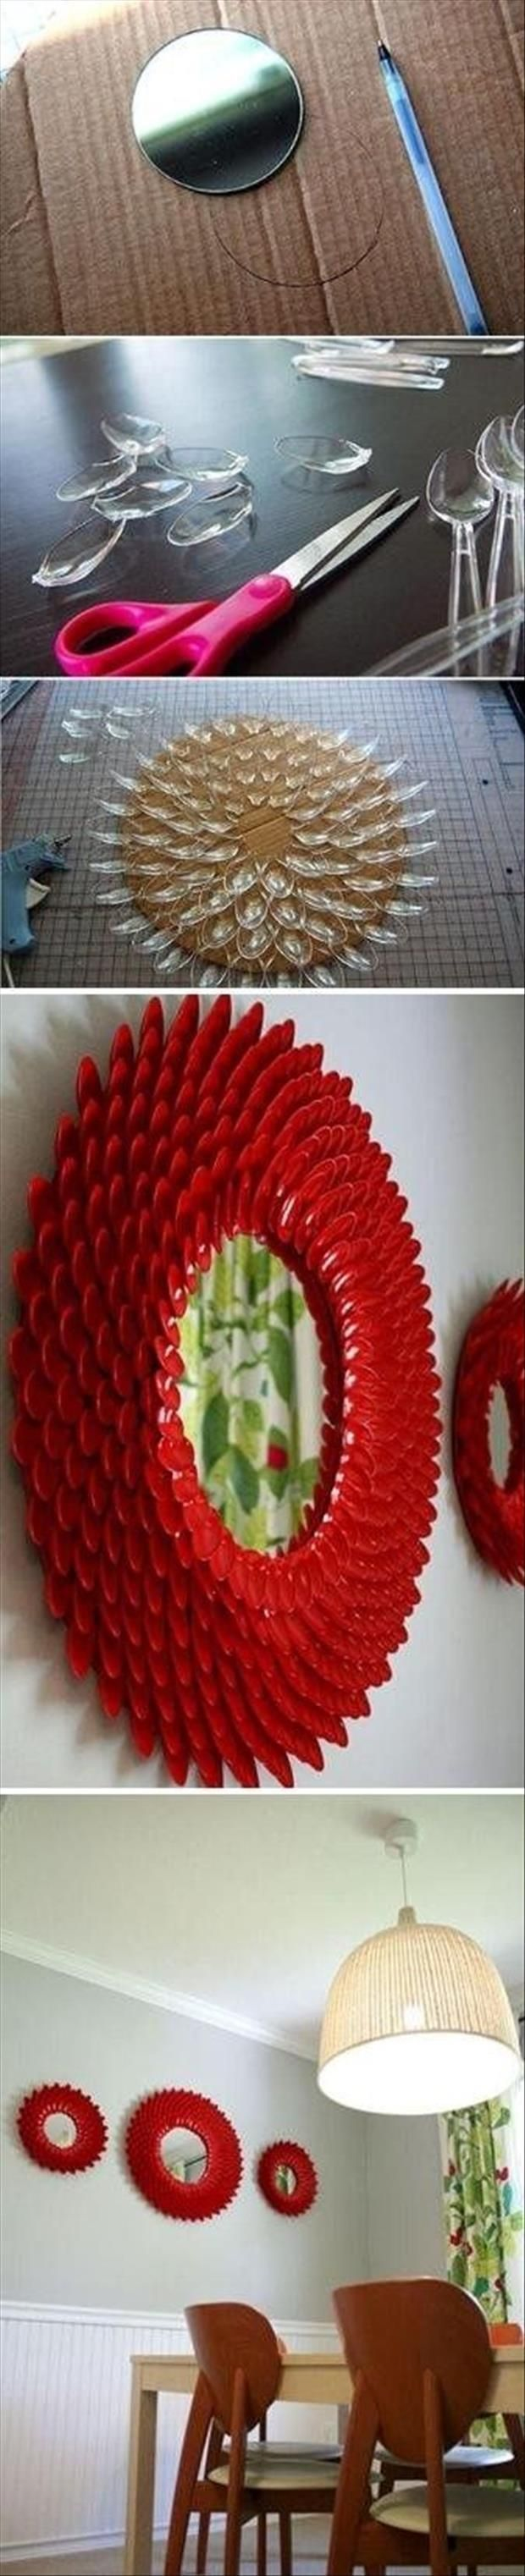 Plastic mirror sheets for crafts - Diy Craft Ideas 6